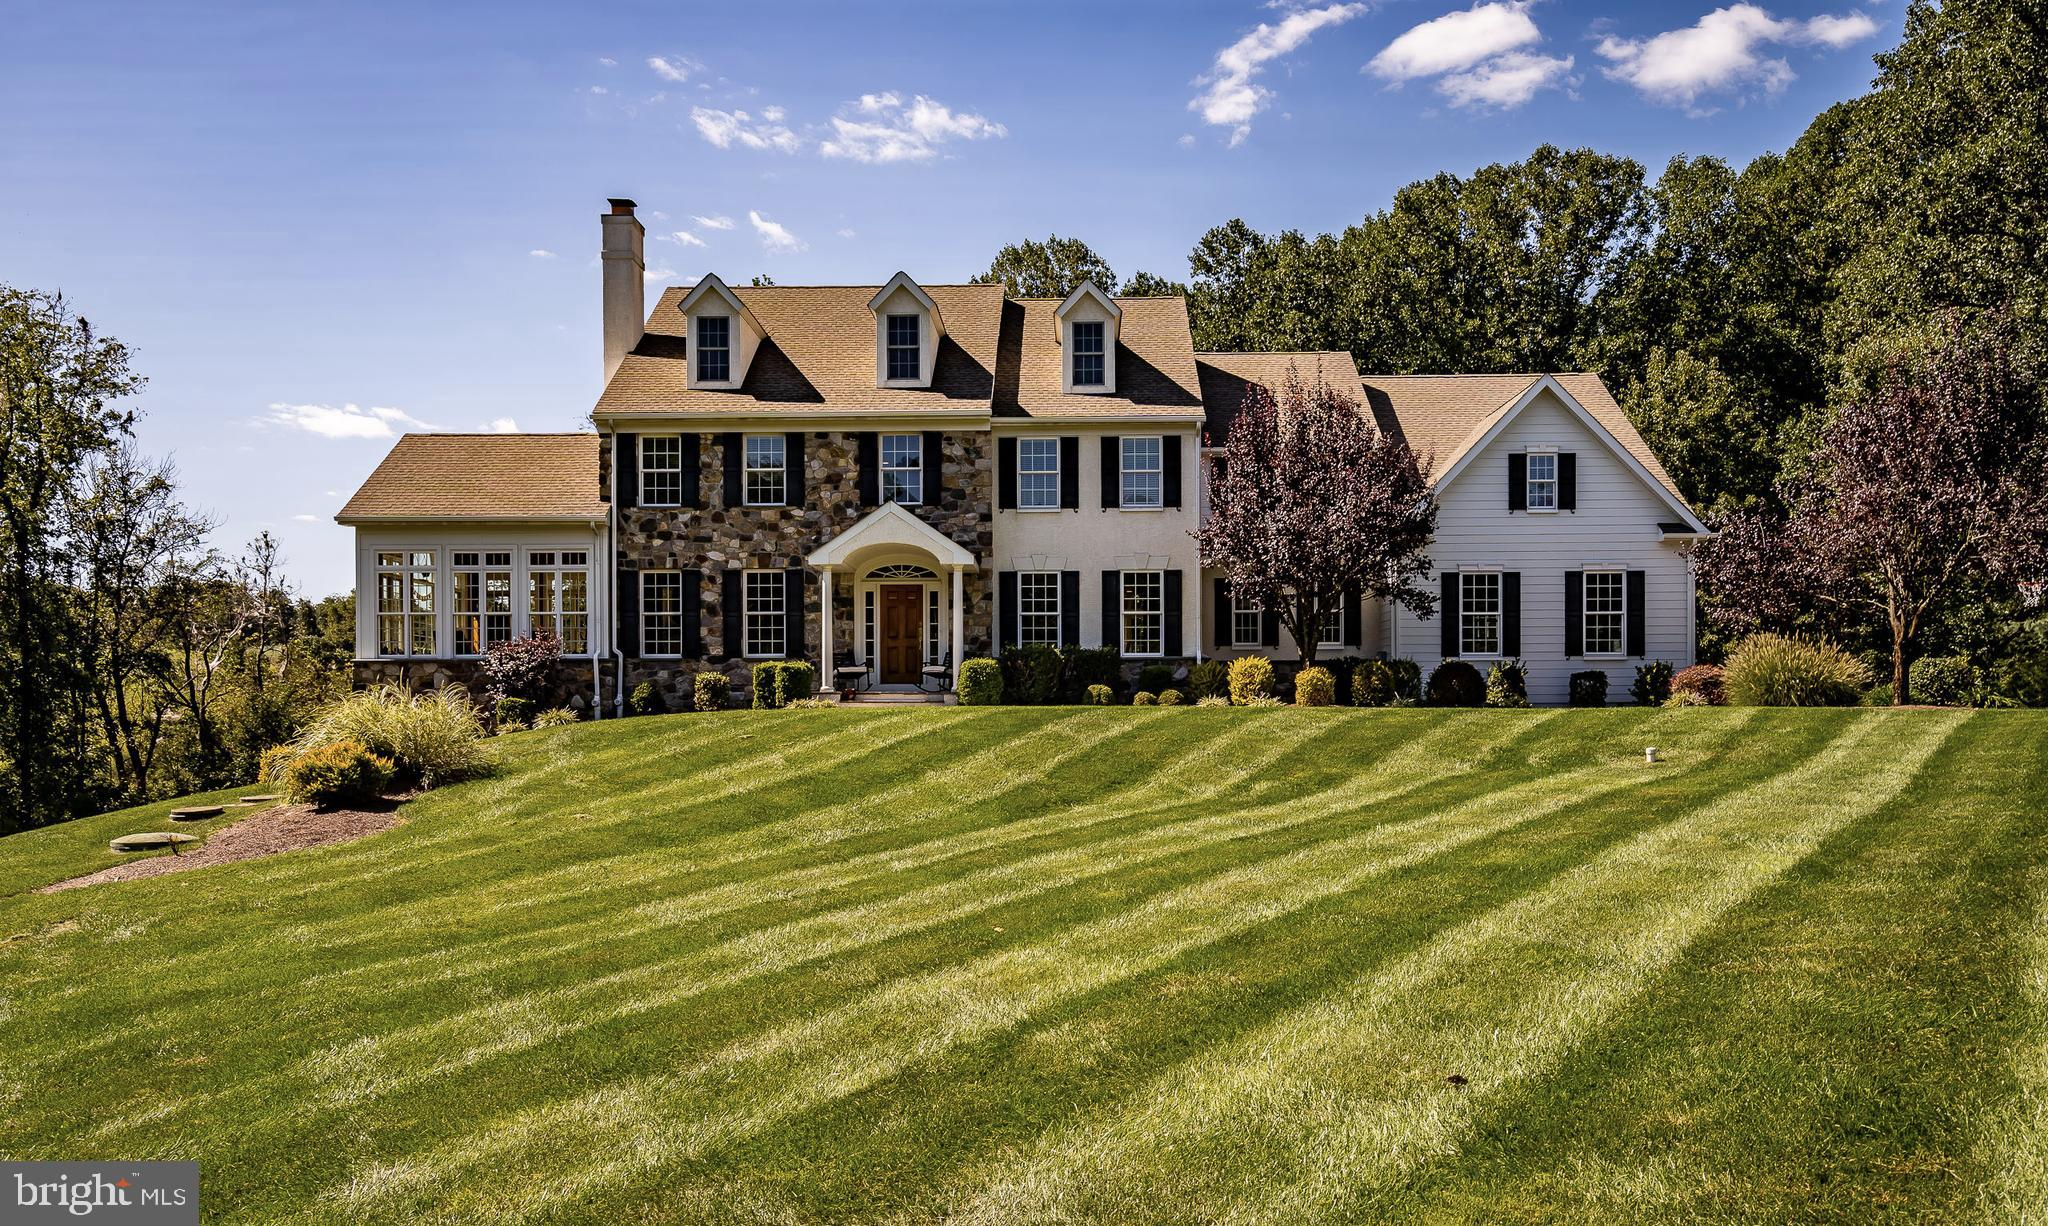 Set in the exclusive Coltsfoot community and in the award-winning Downingtown Area School District, sits this impressive 5 bedroom, 4.2 bath customized home that is loaded with tasteful upgrades. This stately home was constructed by Bancroft Construction whose name is synonymous with high quality and attention to detail. This was their sample home so nothing was spared in its construction! The main level has a wonderful floor plan that is perfect for those who like to entertain. From the flagstone front porch and solid wooden front door, you are greeted upon entry with a two-story Foyer, beautiful  staircase, and surrounded with exquisite moldings. The gracious openings from the Foyer leading into the adjoining Living Room and Dining Room showcase extensive cabinet work which is the hallmark of this builder's exceptional craftsmanship. The Living Room connects to the dramatic Conservatory with its cathedral ceiling and walls of windows. A short hallway from the Foyer leads to a Study with a wall of bookshelves and large window. Also found here is a Formal Powder Room and a spacious Coat Closet. Adjacent to the Dining Room is a handy Wet Bar with lots of storage space, an under counter refrigerator, and a granite counter. The Kitchen is a chef's delight - perfect for creating anything from an intimate dinner for two to a grand feast for the extended family. The Kitchen boasts a Sub Zero refrigerator, a Bosch dishwasher, duel Bosch wall ovens, and a five burner Bosch cooktop. You will appreciate the kitchen's abundance of storage behind creamy white cabinetry with numerous slide-out drawers and shelves. A stunning tile back splash and granite counters add beauty and function to this lovely kitchen. Found here is a rear staircase to the upper level as well as the access to the lower level. The Morning/Breakfast Room opens to the rear Deck and is surrounded by glass that floods the area with natural light. The adjoining Family Room could have blessed an interior design 